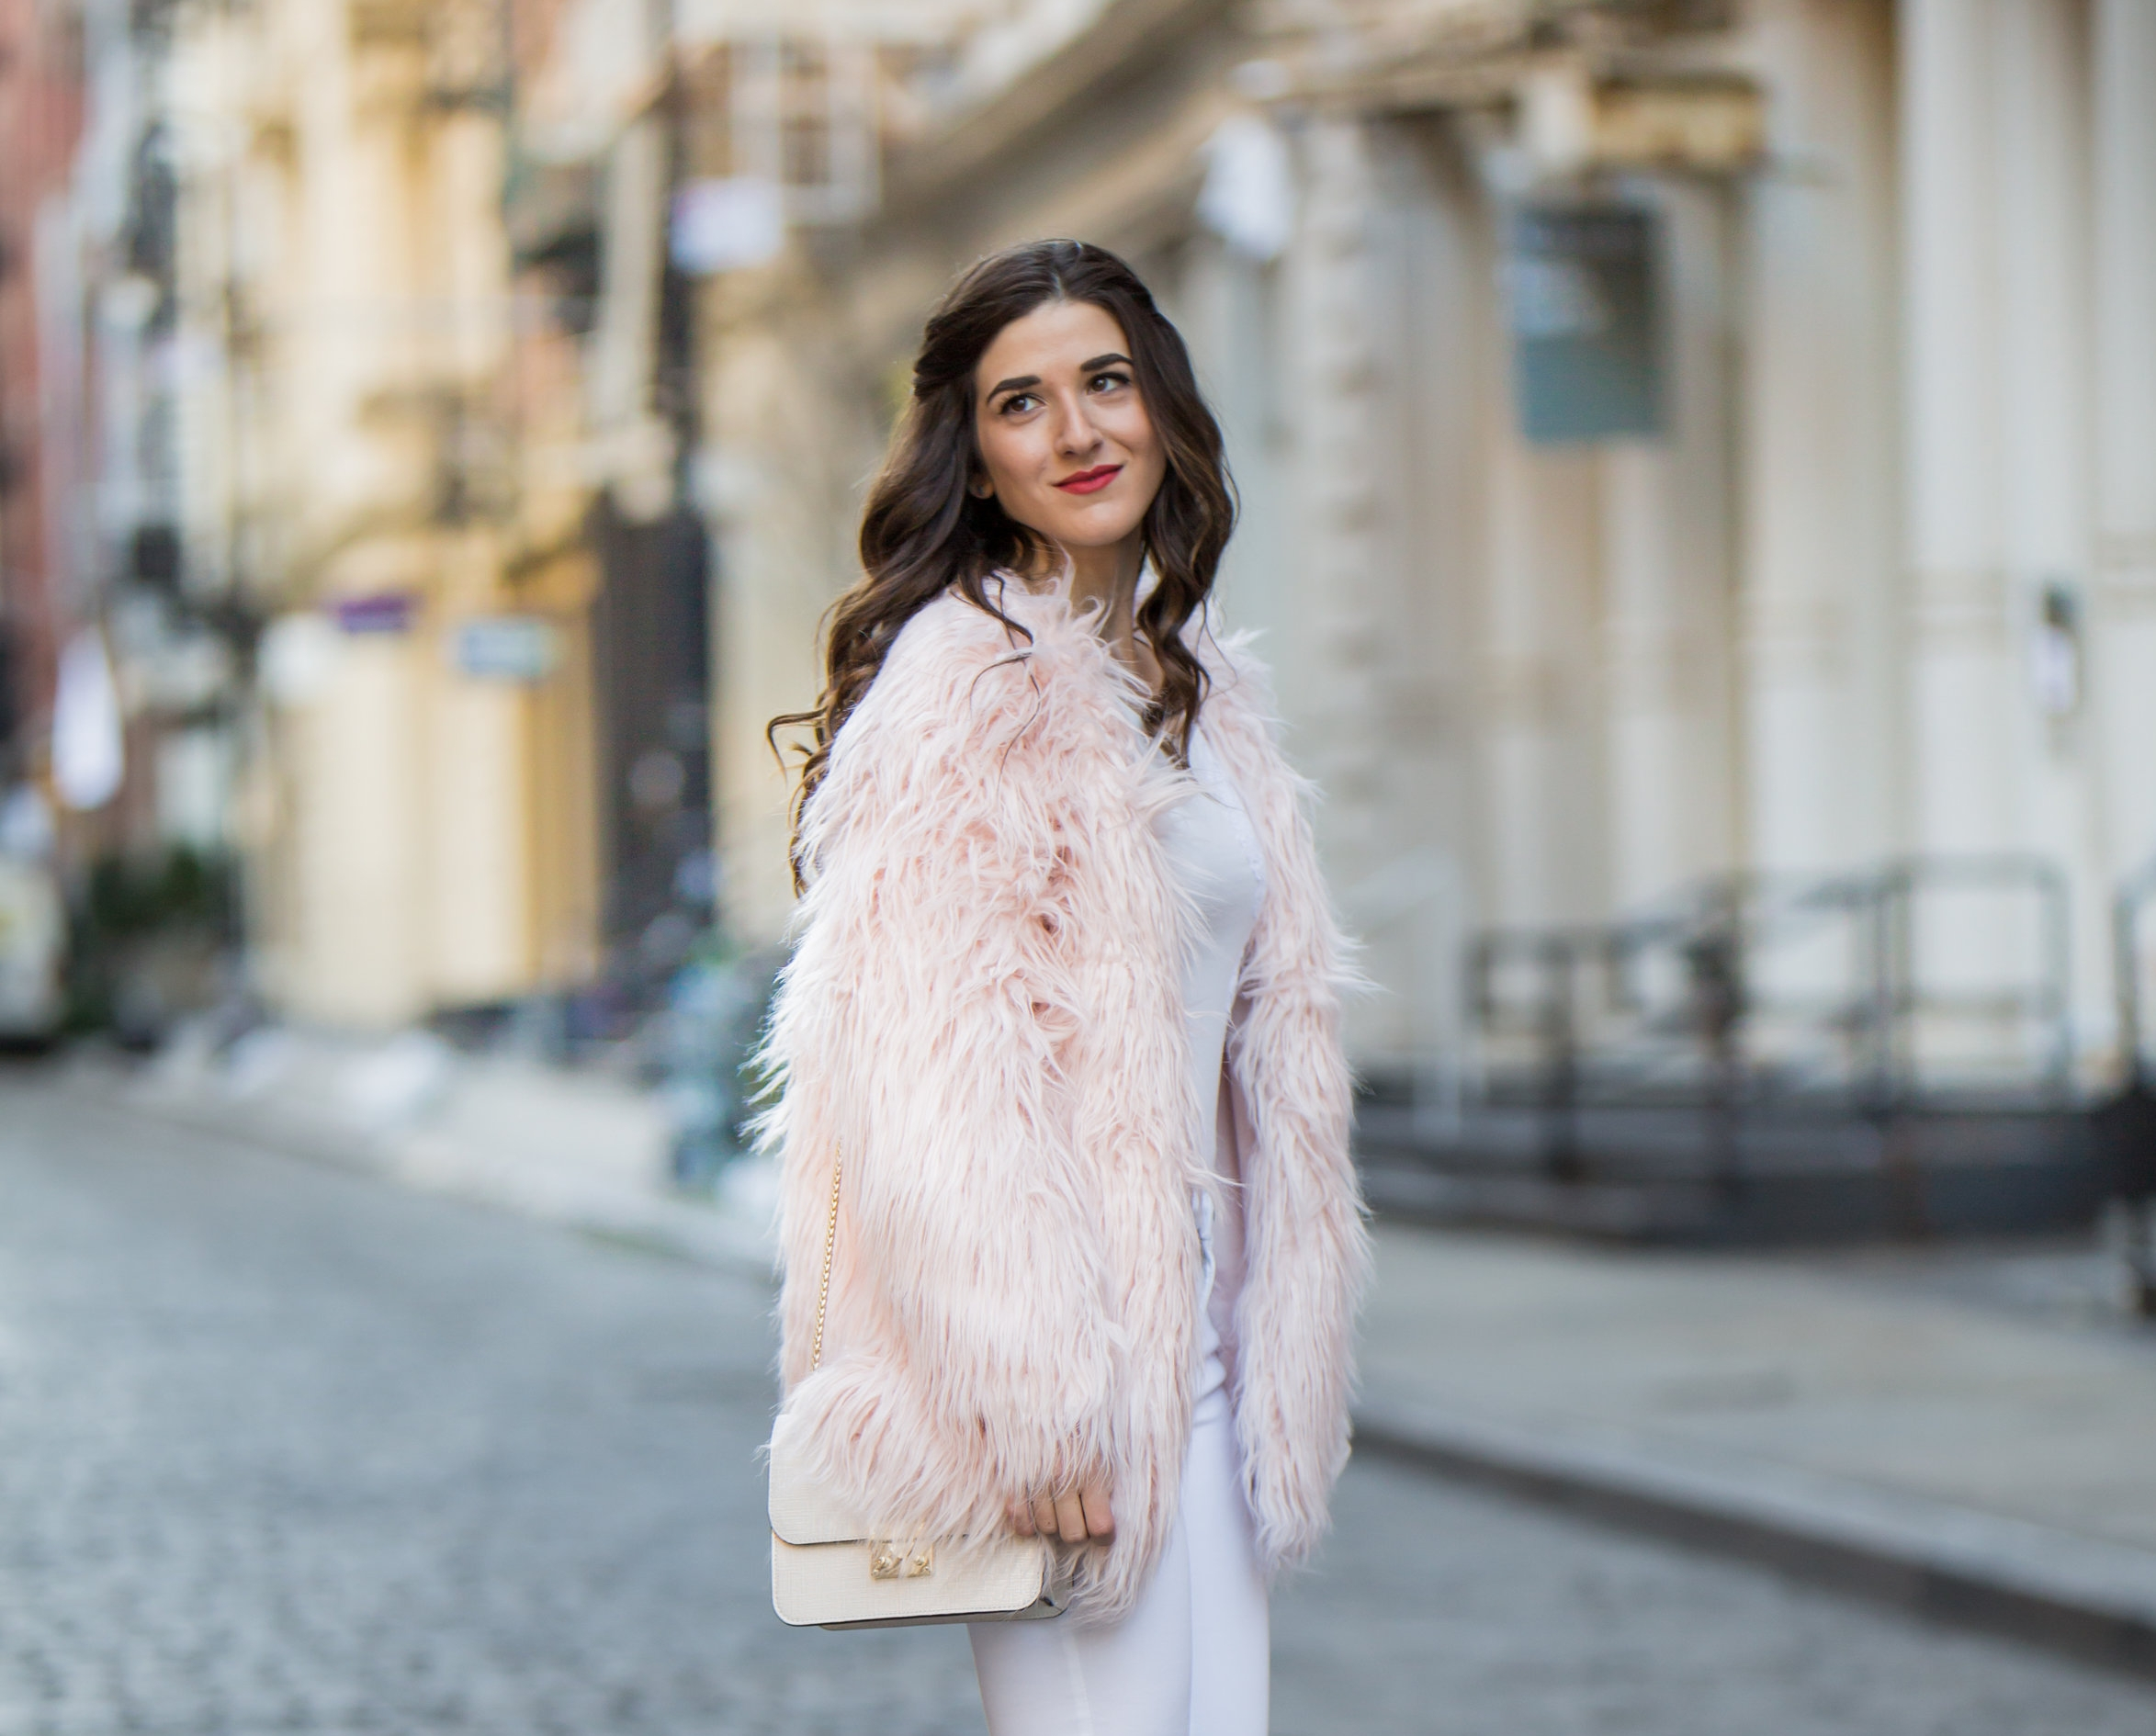 Pink Faux Fur Jacket White Jeans The Best Career Advice Esther Santer Fashion Blog NYC Street Style Blogger Outfit OOTD Trendy Winter Whites Henri Bendel Bag Tan Booties Accessories Girl Women Shop Sale Hair Model Shoes What To Wear Wearing Photoshoot.jpg